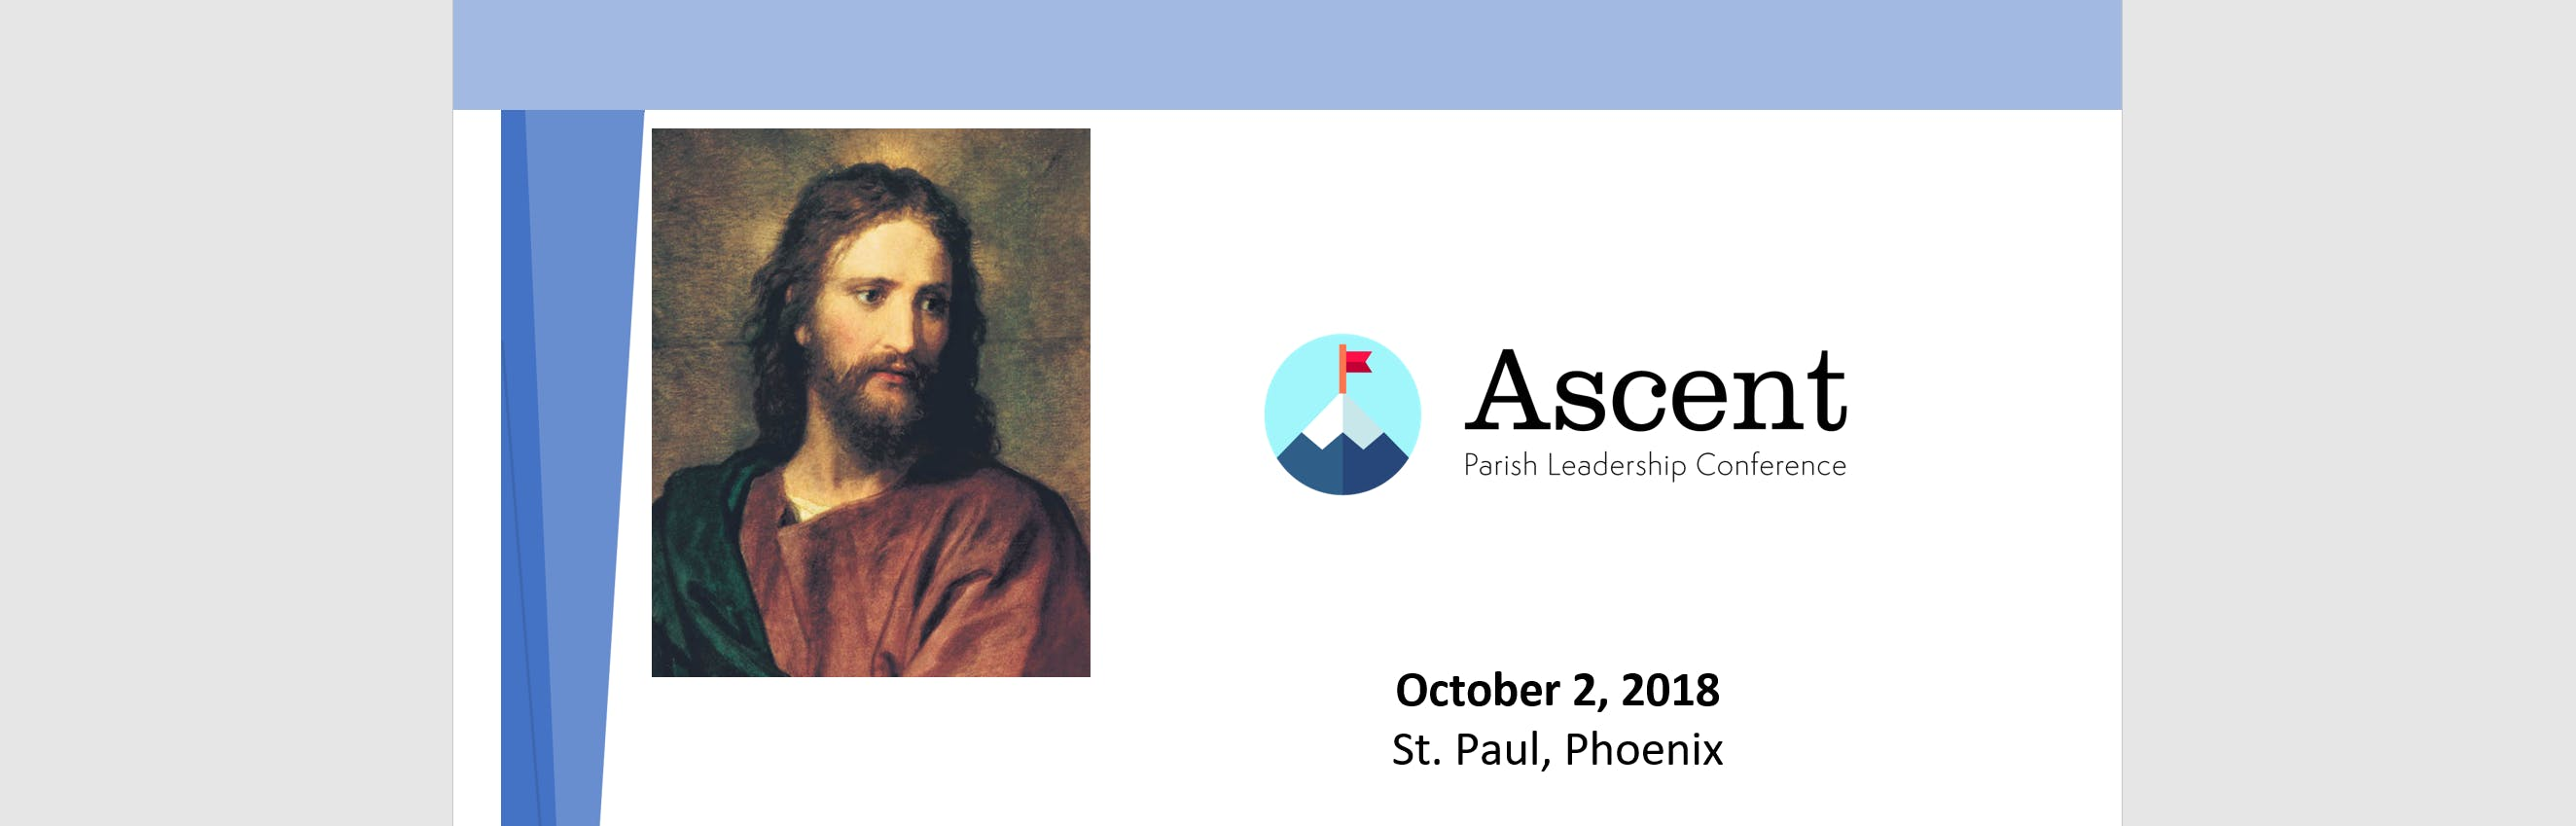 2018 Ascent Leadership Conference - St. Pauls